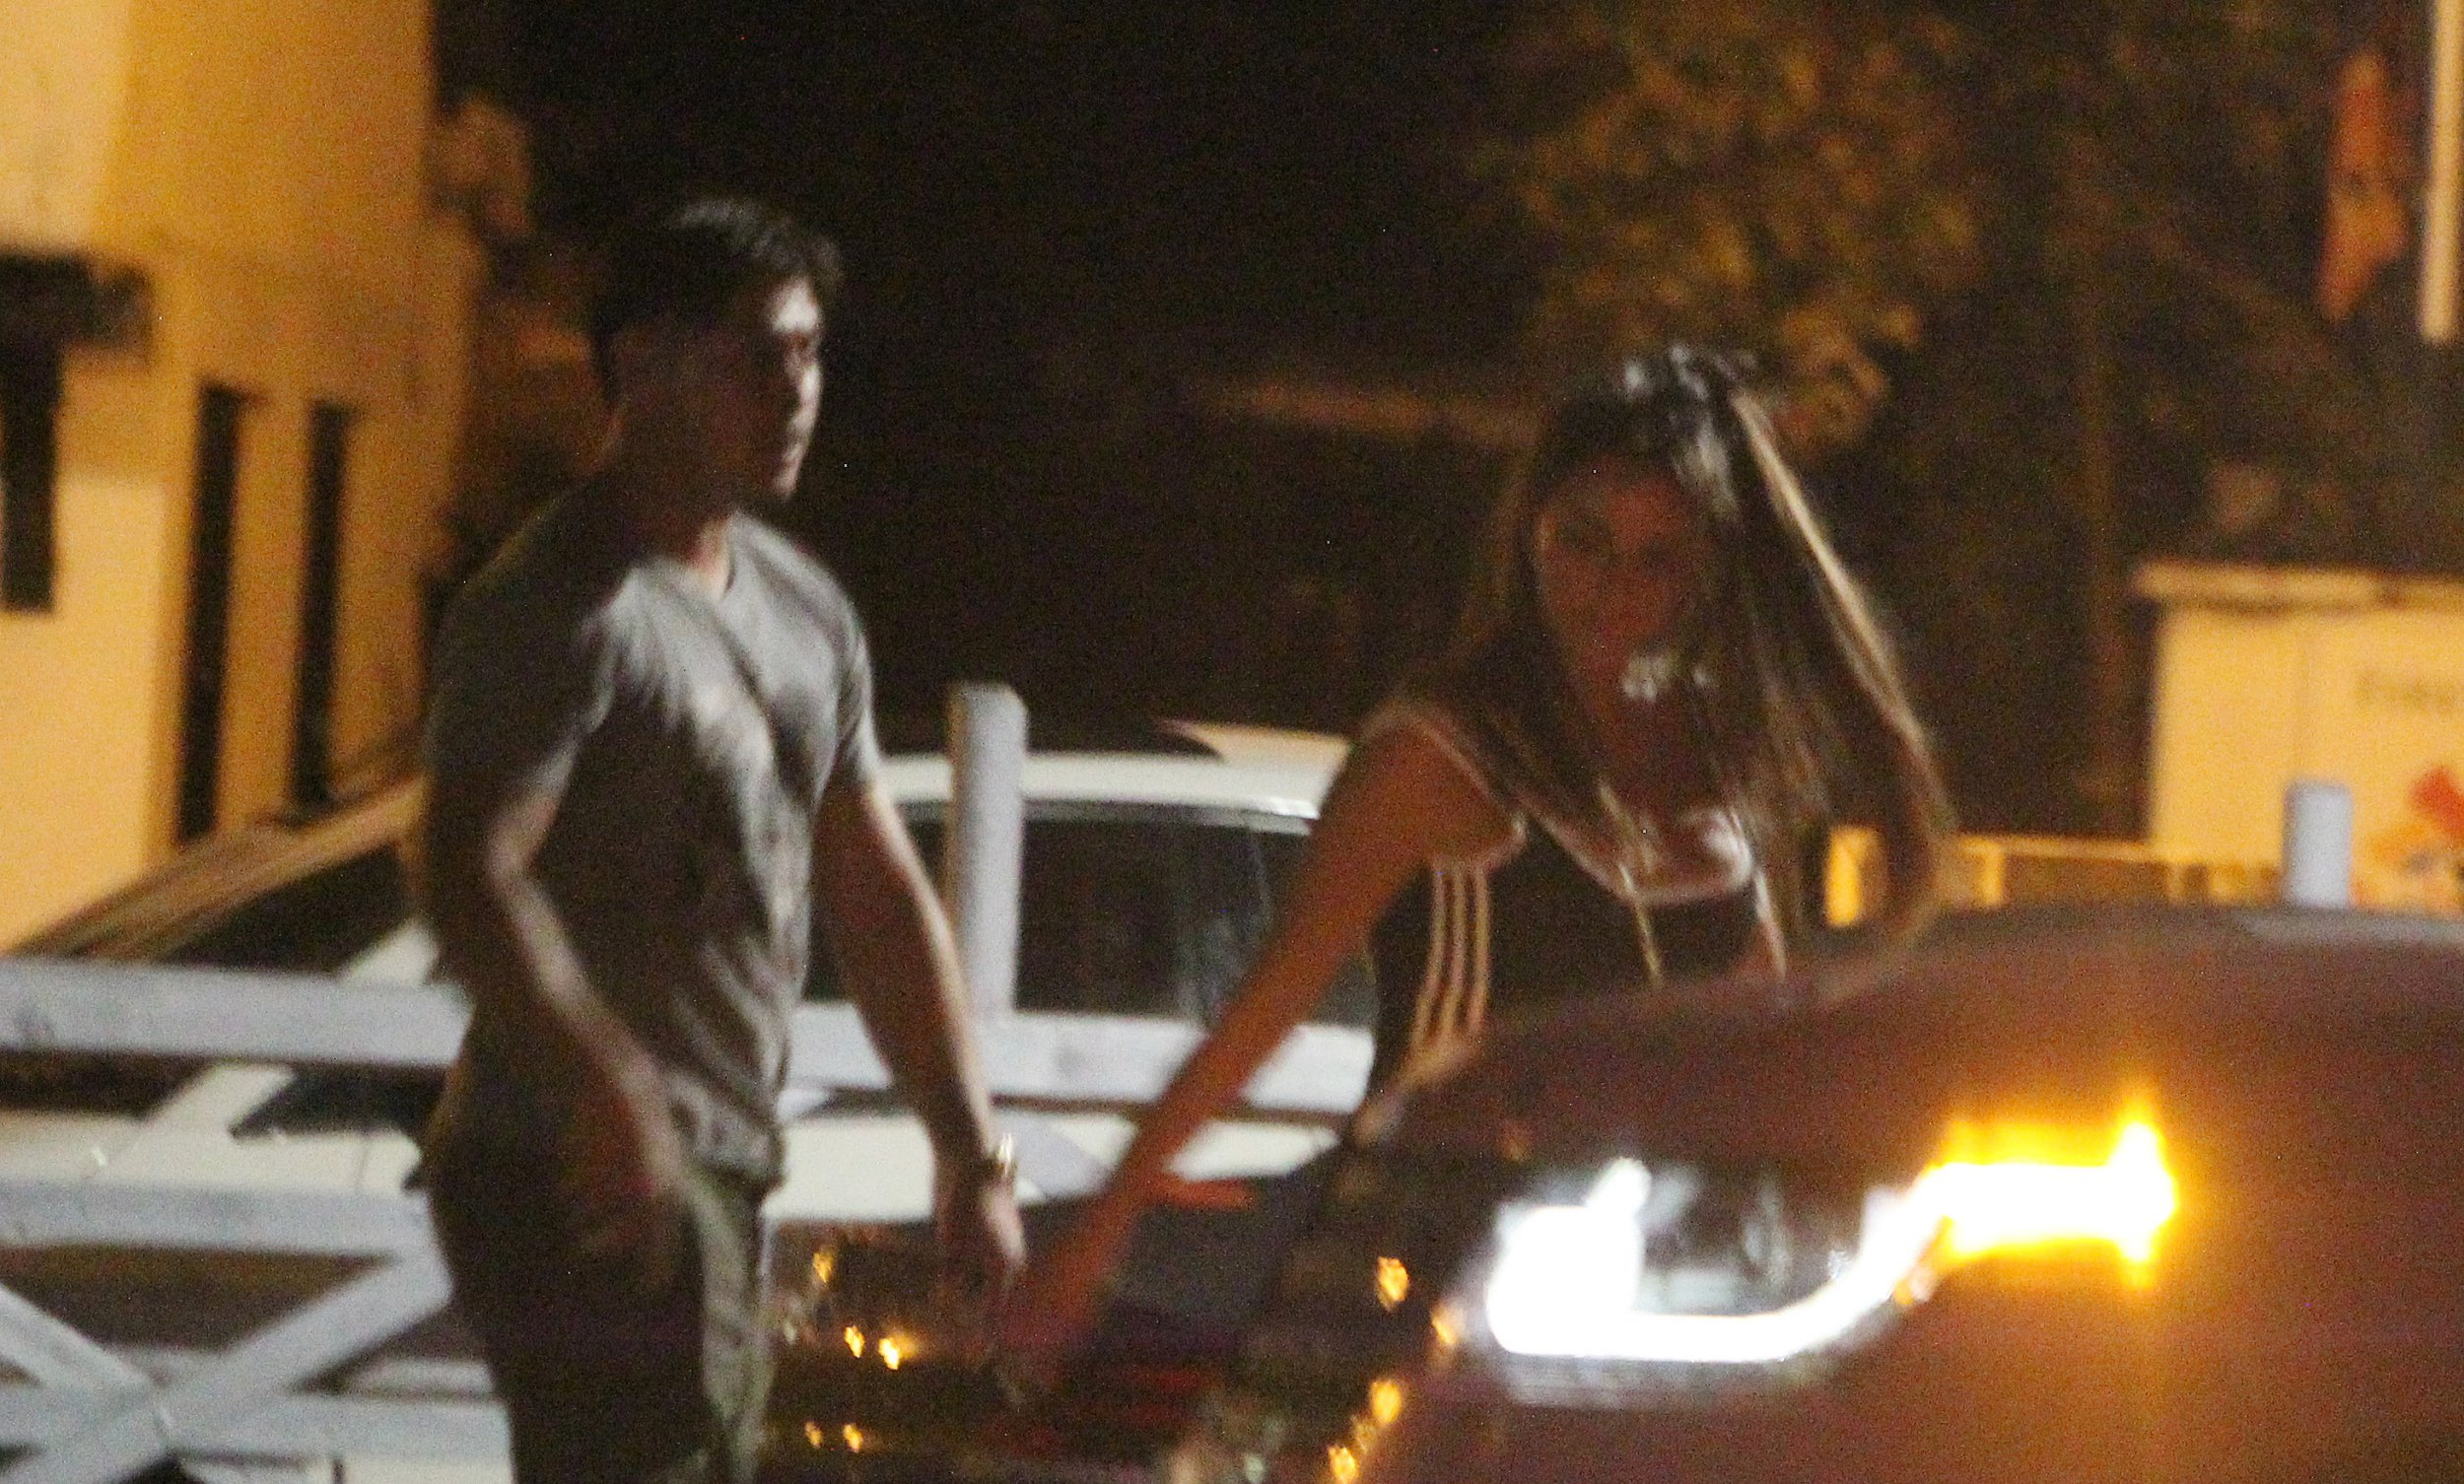 SNAPARAZZI LIMITED Exclusive Katie Price Seen Leaving The Blue Boar Pub Essex Worse Of Wear, And Singing, She was seen taking what look like white powered in the video. When she left the pub she asked our photographer if he was a drag dealer and it was a shame he wasn't. She was seen leaving the blue boar pub with an unknown male Byline: Snaparazzi Limited 22 August 2018